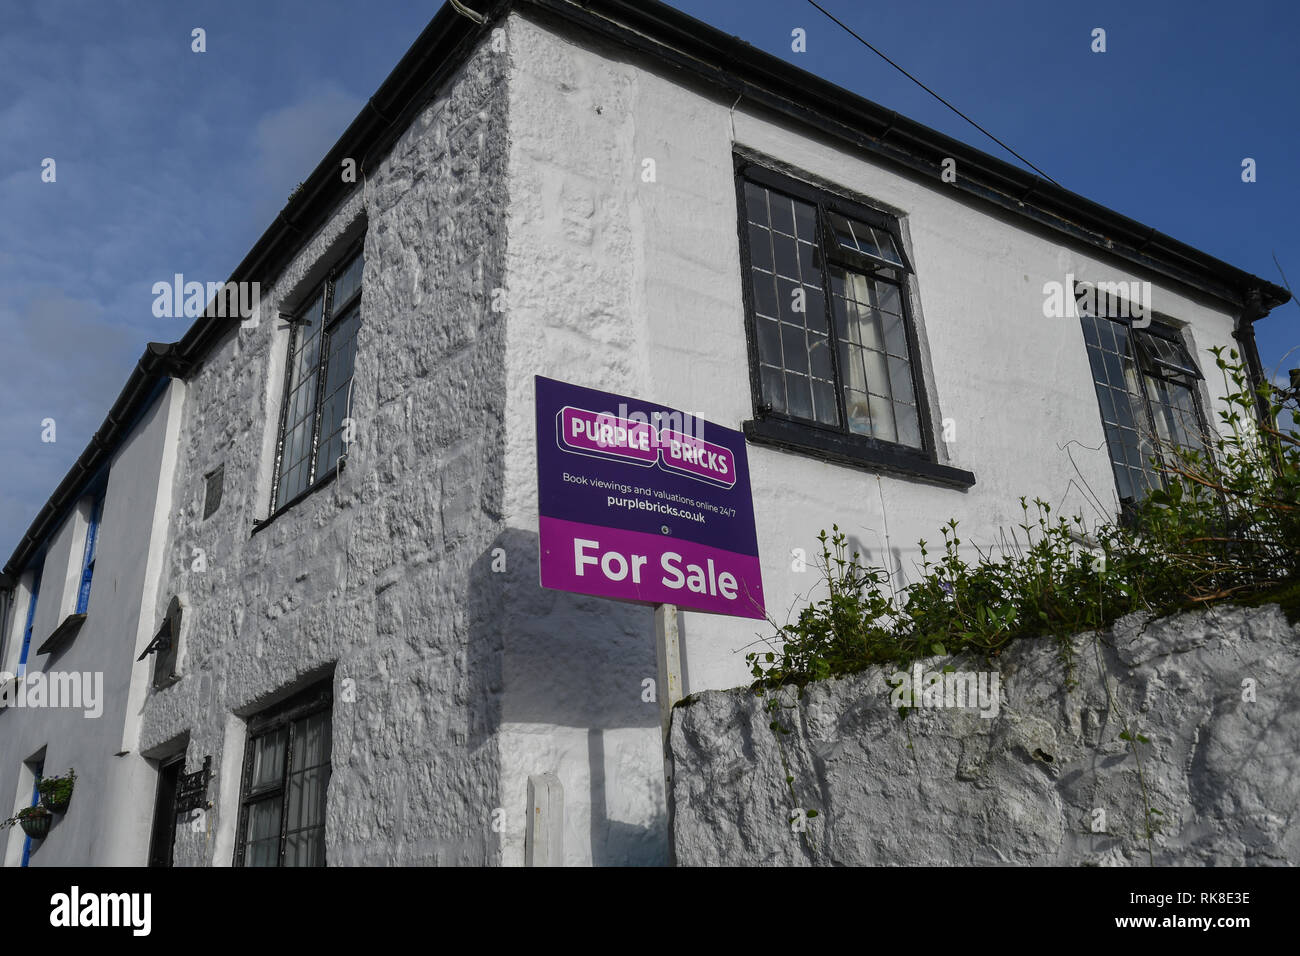 Purple bricks estate agency sign outside a building - Stock Image